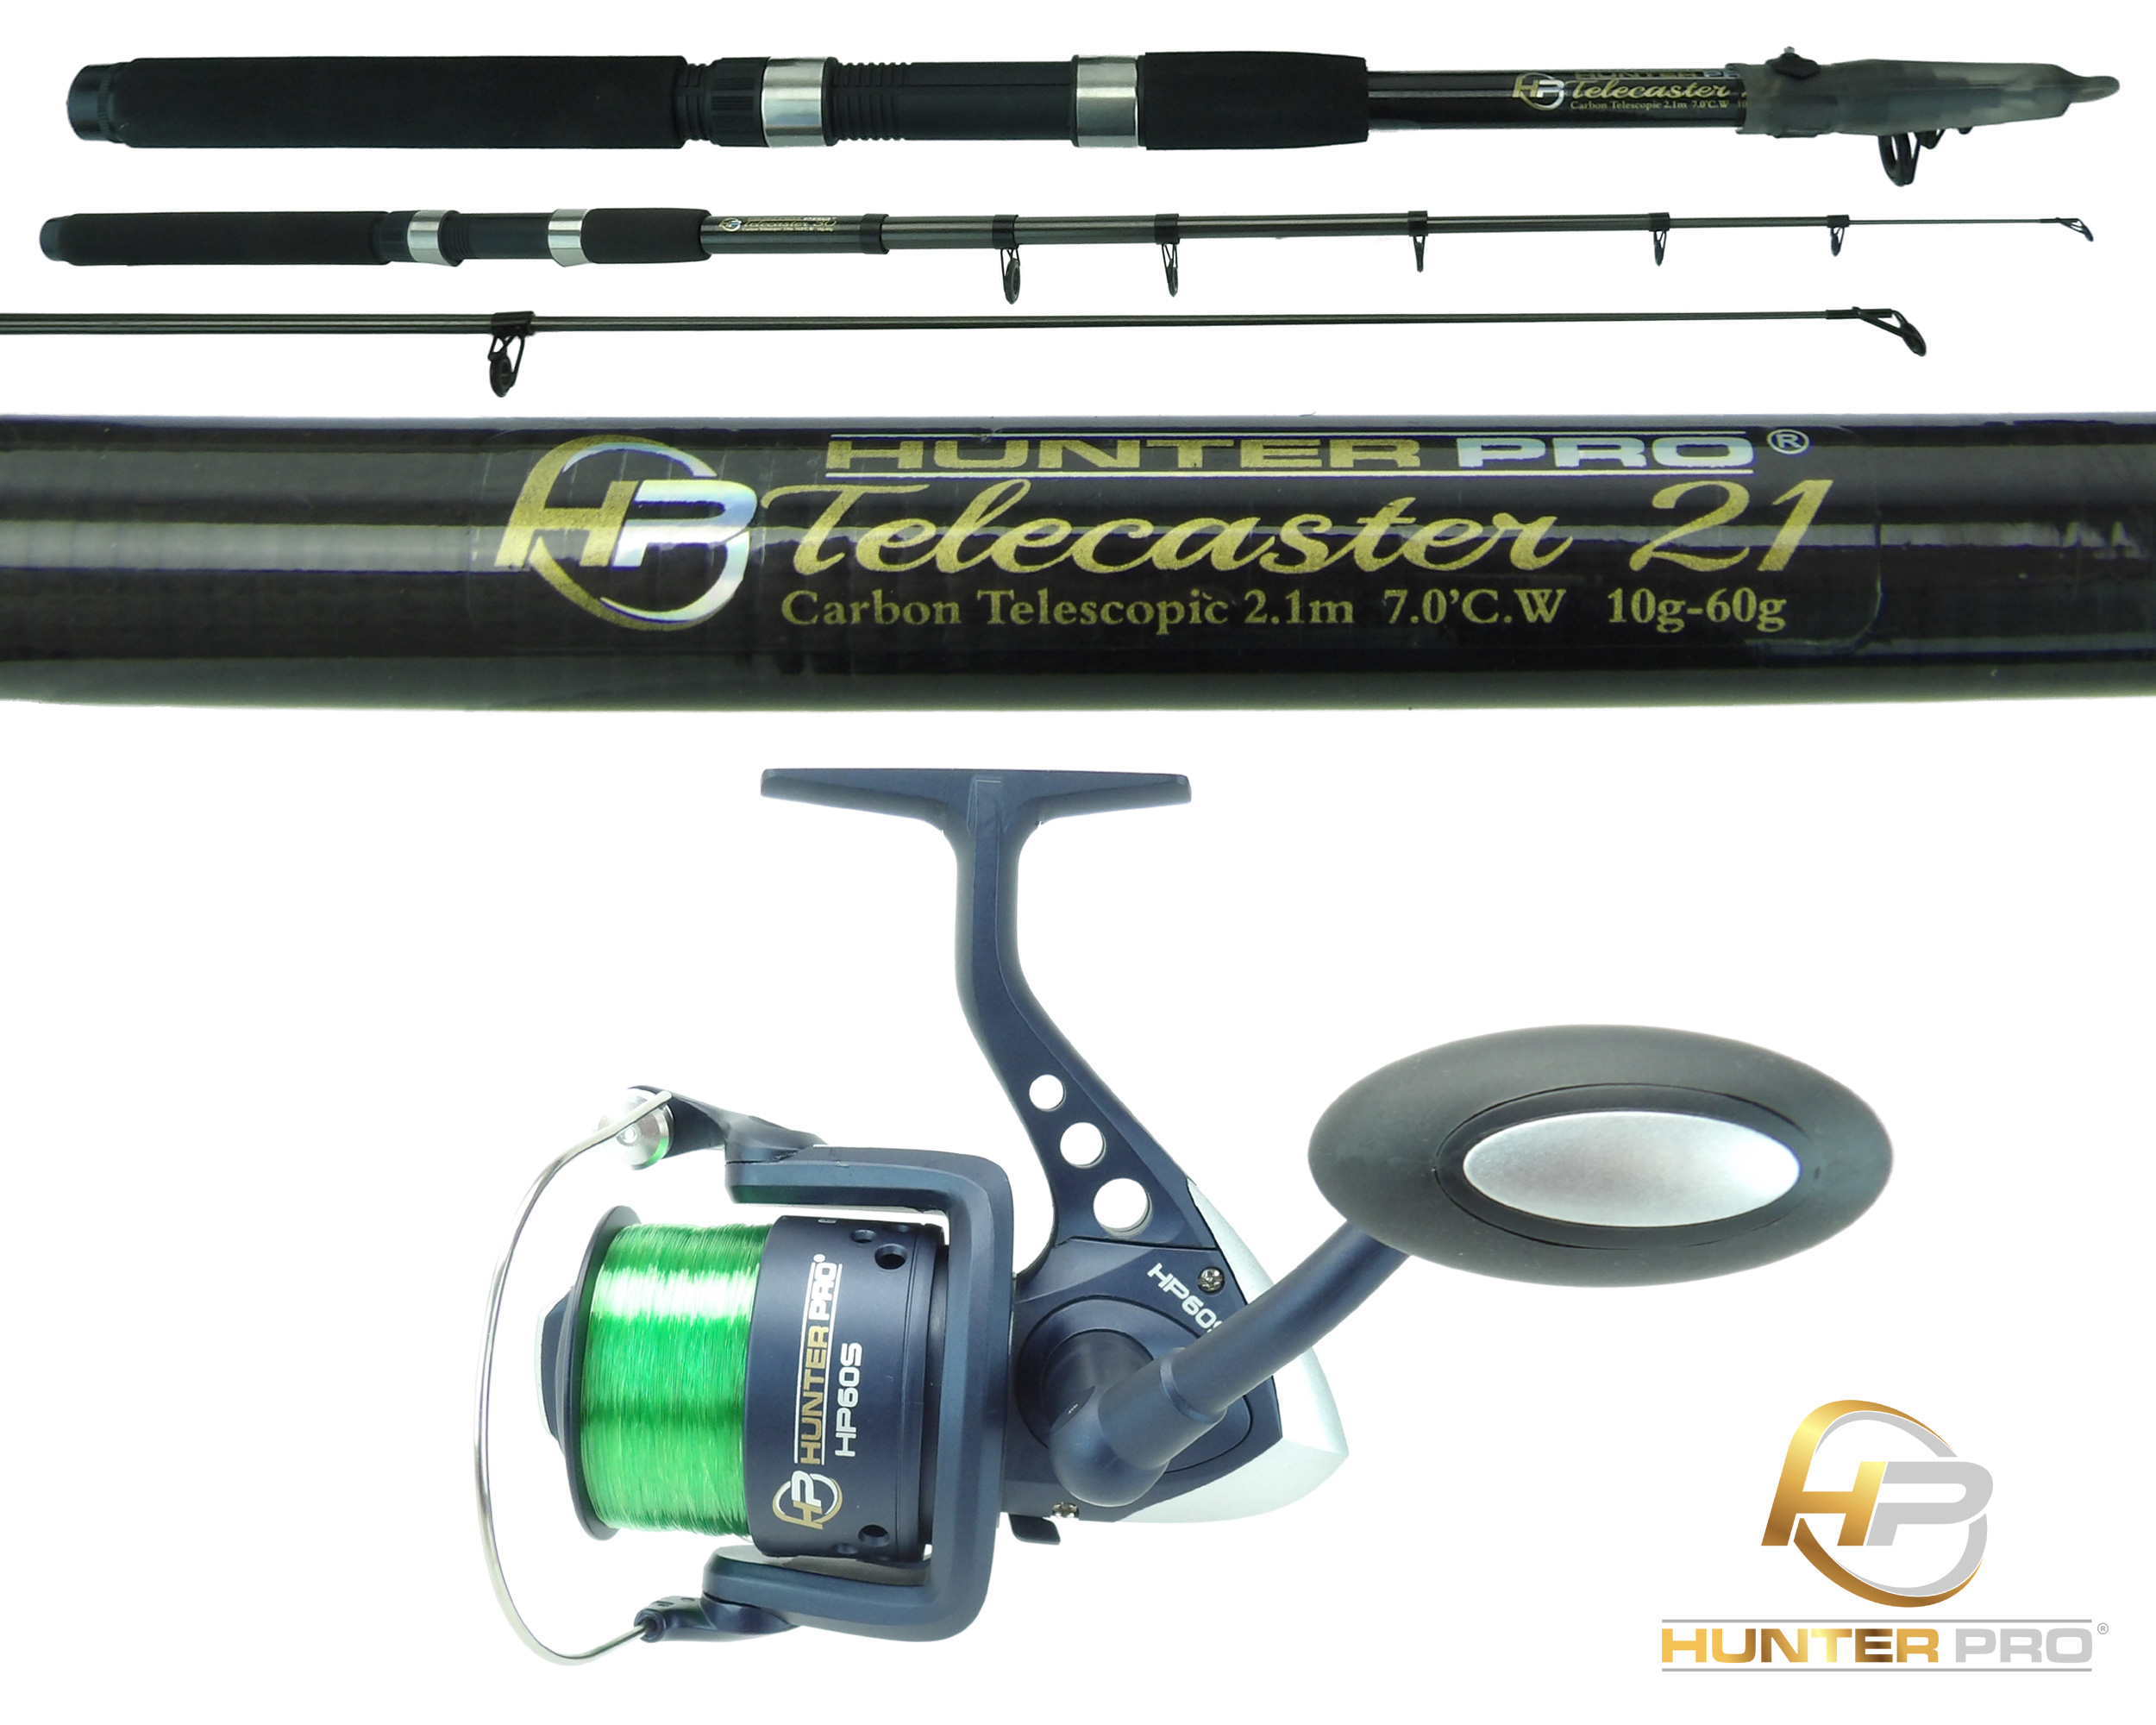 telescopic 6ft 7ft fishing rod & reel carbon travel pike bass, Fishing Reels